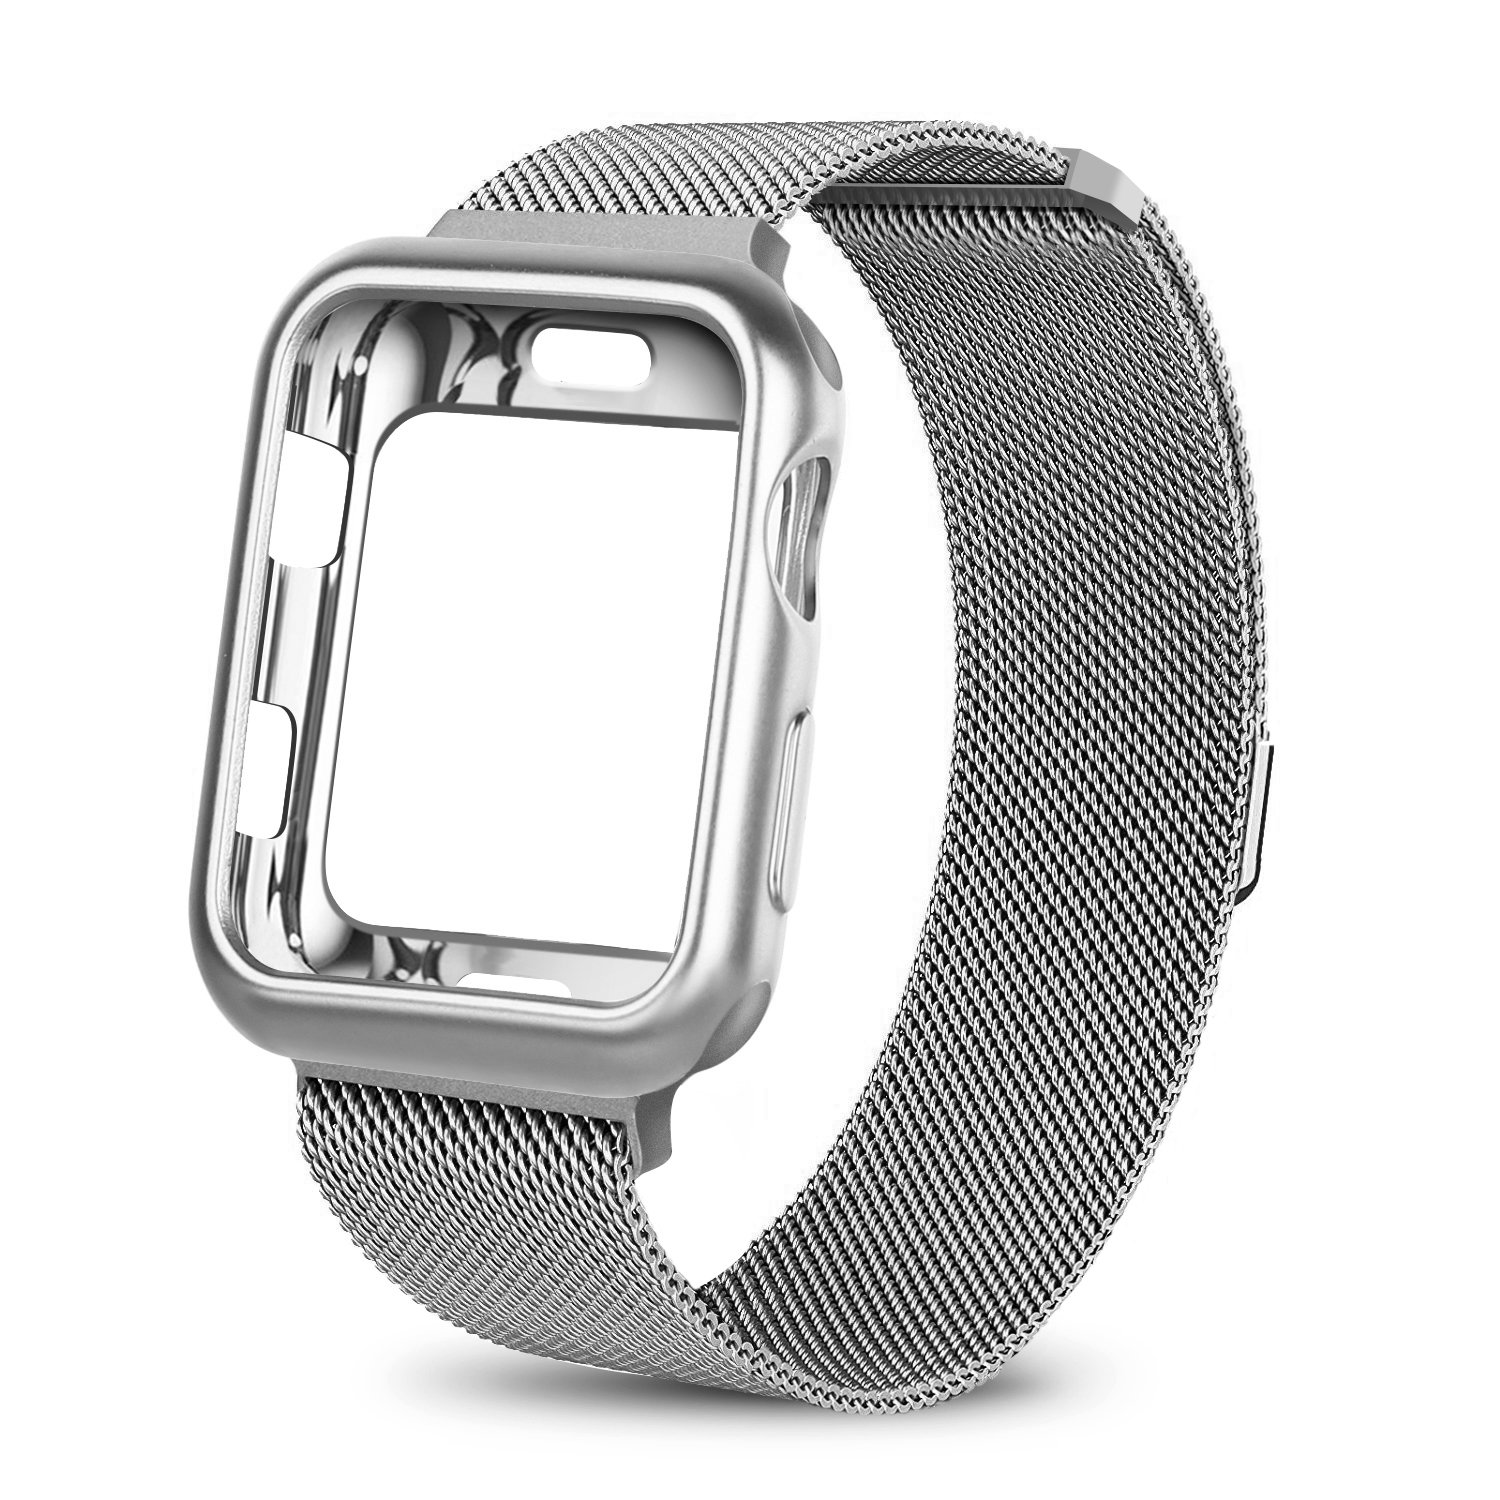 WEFU for Apple Watch Band with Case 38mm 42mm, Stainless Steel Mesh Milanese Loop with Adjustable Magnetic Closure Replacement Wristband iWatch Band for Apple Watch Series 3 2 1(38mm Silver)